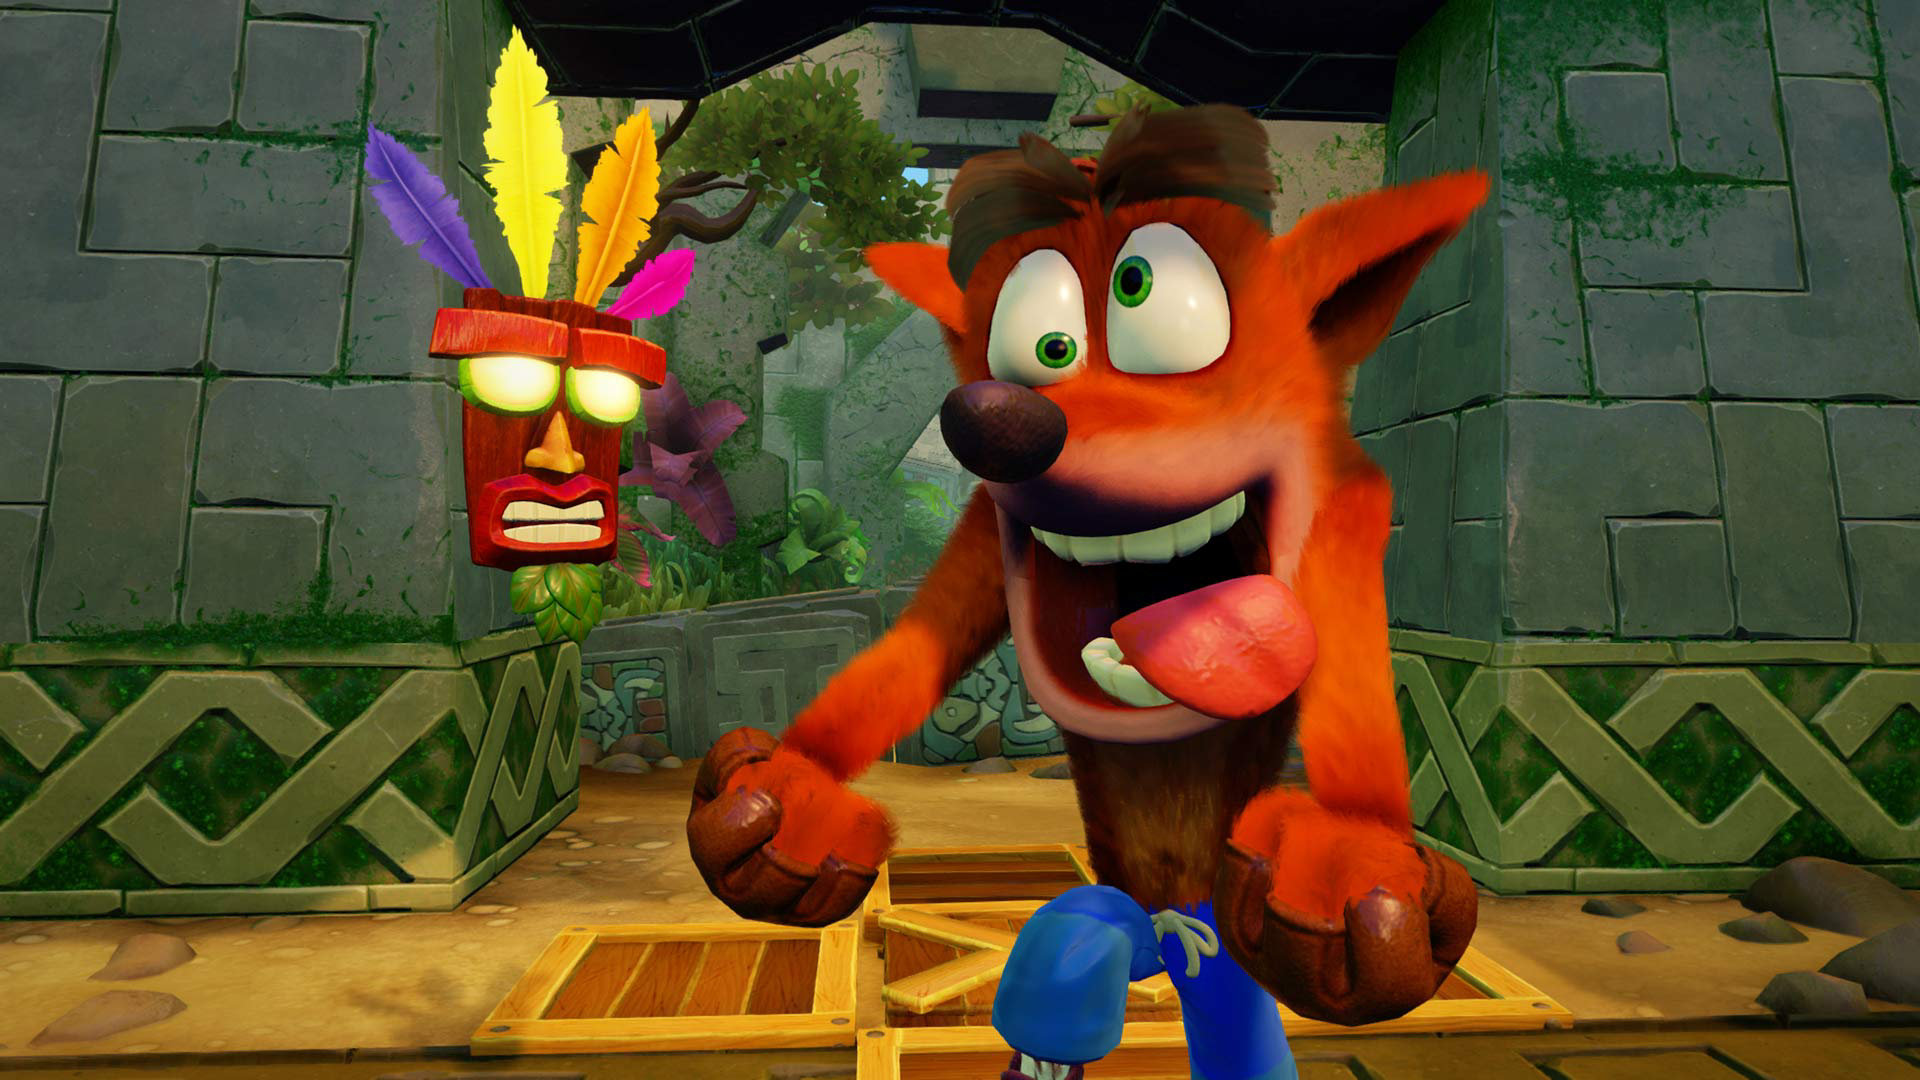 PlayStation Store's Top Downloads for June: Crash Bandicoot and